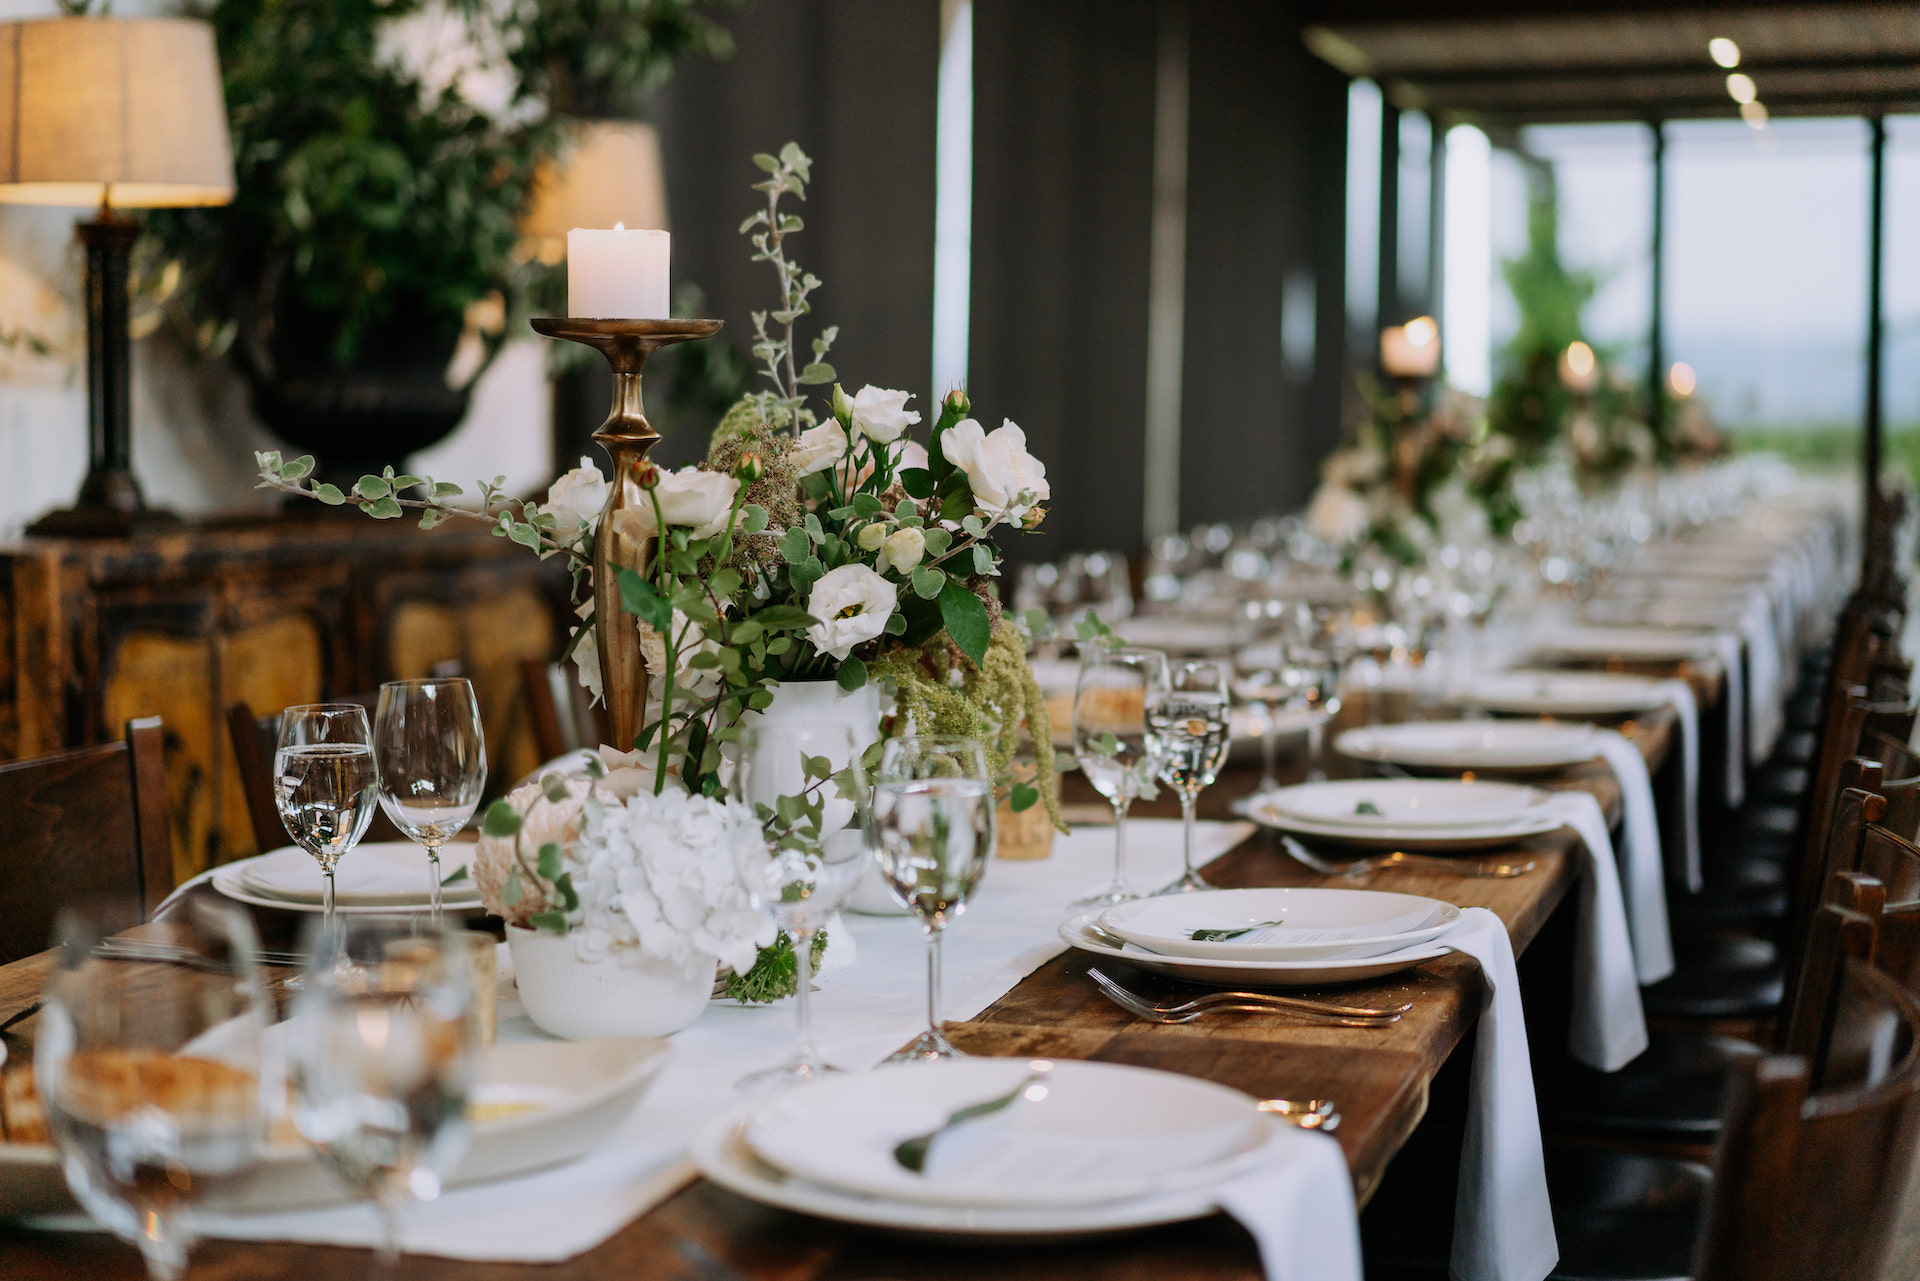 White and green wedding flowers and summer wedding reception tablescape styling at Stones of the Yarra Valley.